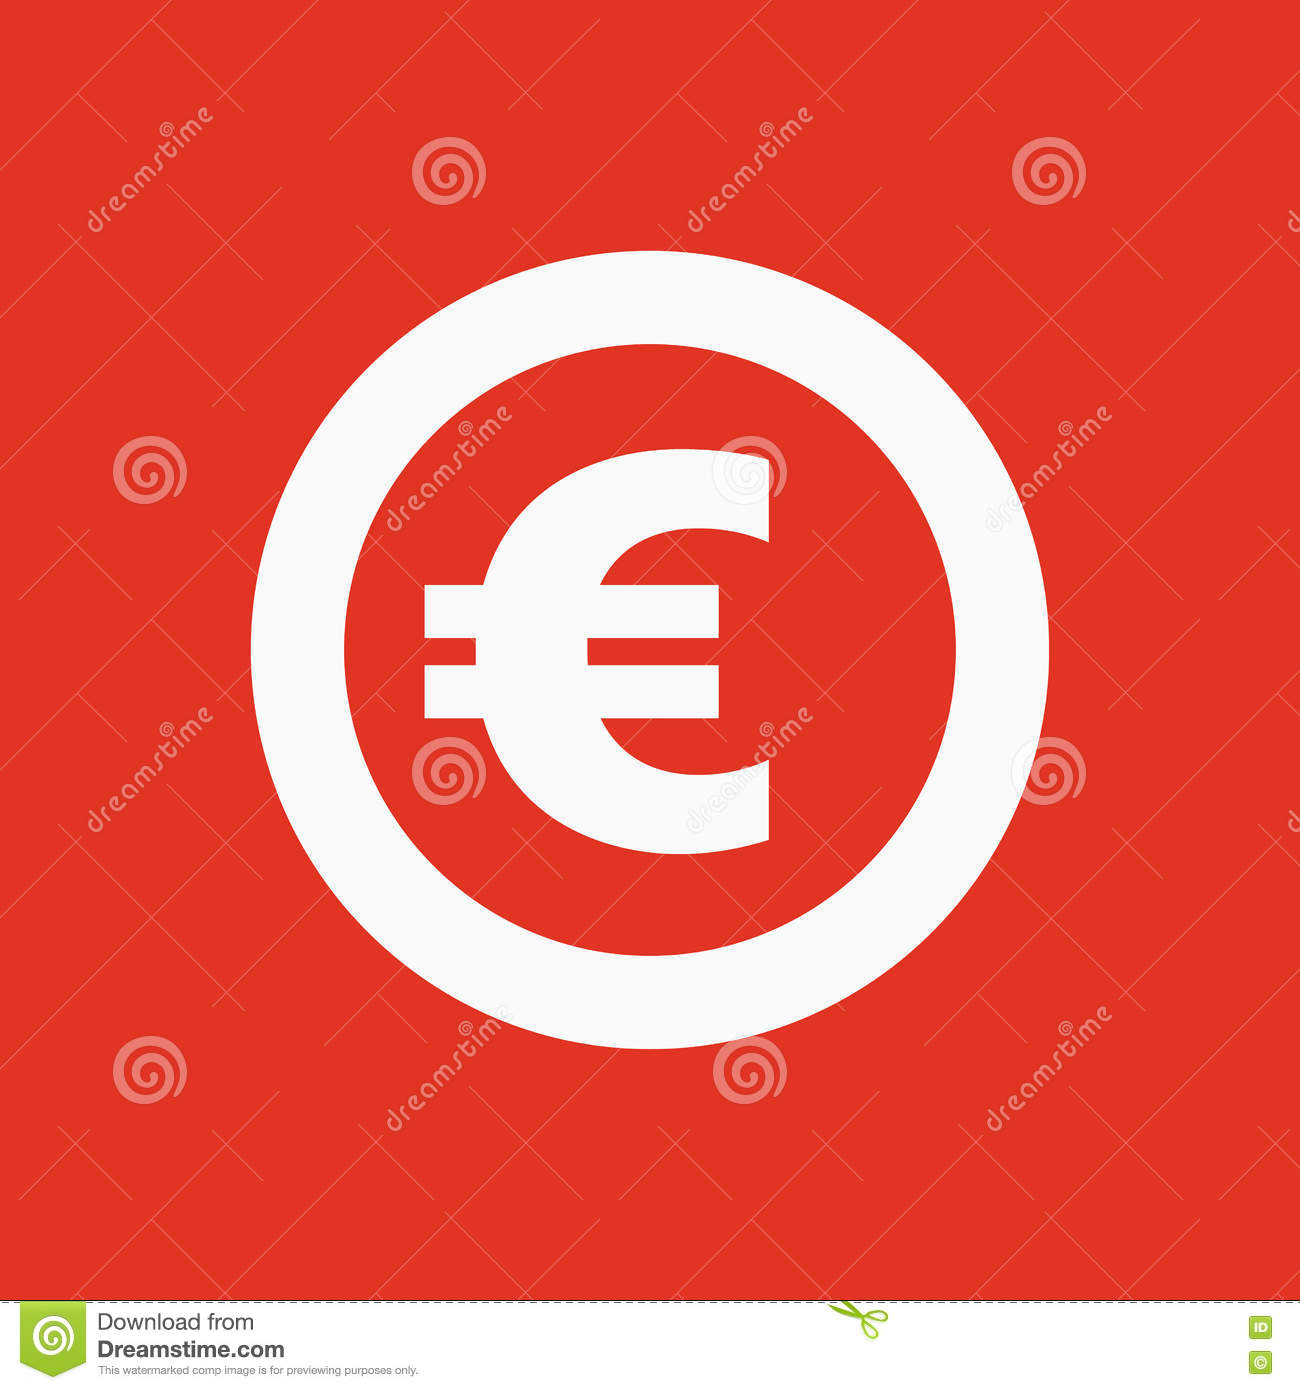 The Euro Icon Cash And Money Wealth Payment Symbol Flat Stock